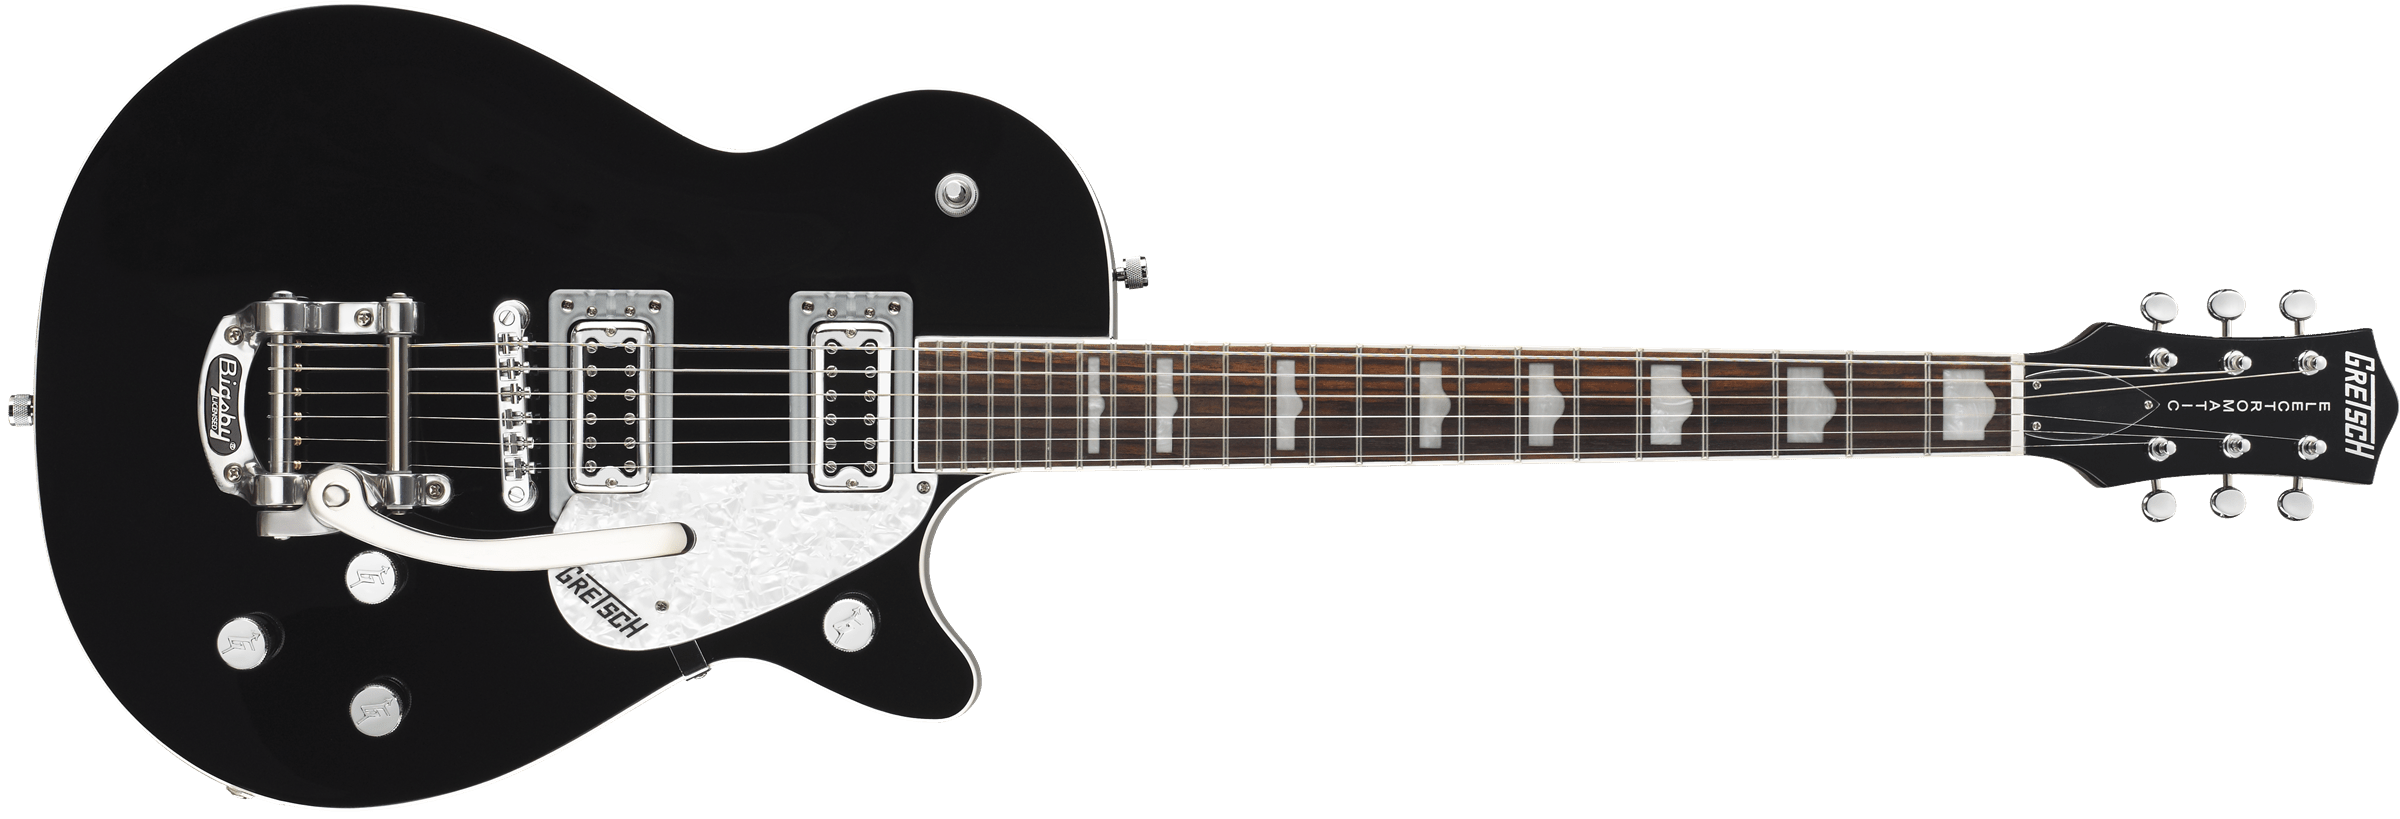 Gretsch Electromatic Duo Jet Synchromatic Wiring Diagram